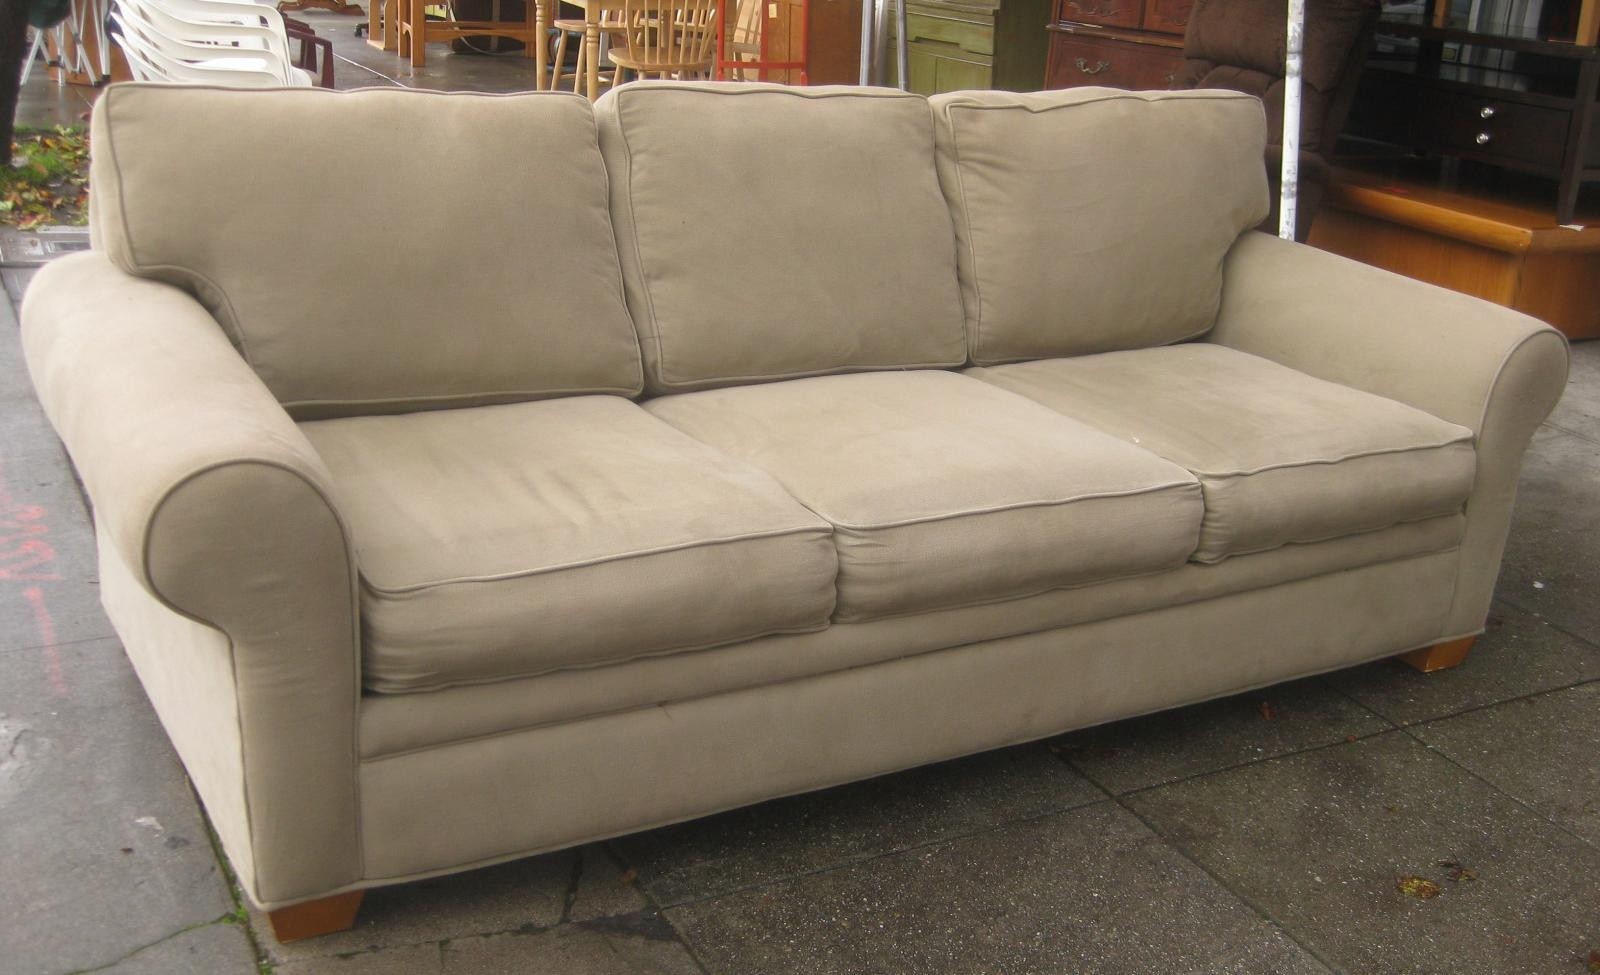 sofa collection charity leicester linio mexico cama 20 inspirations beige leather couches ideas